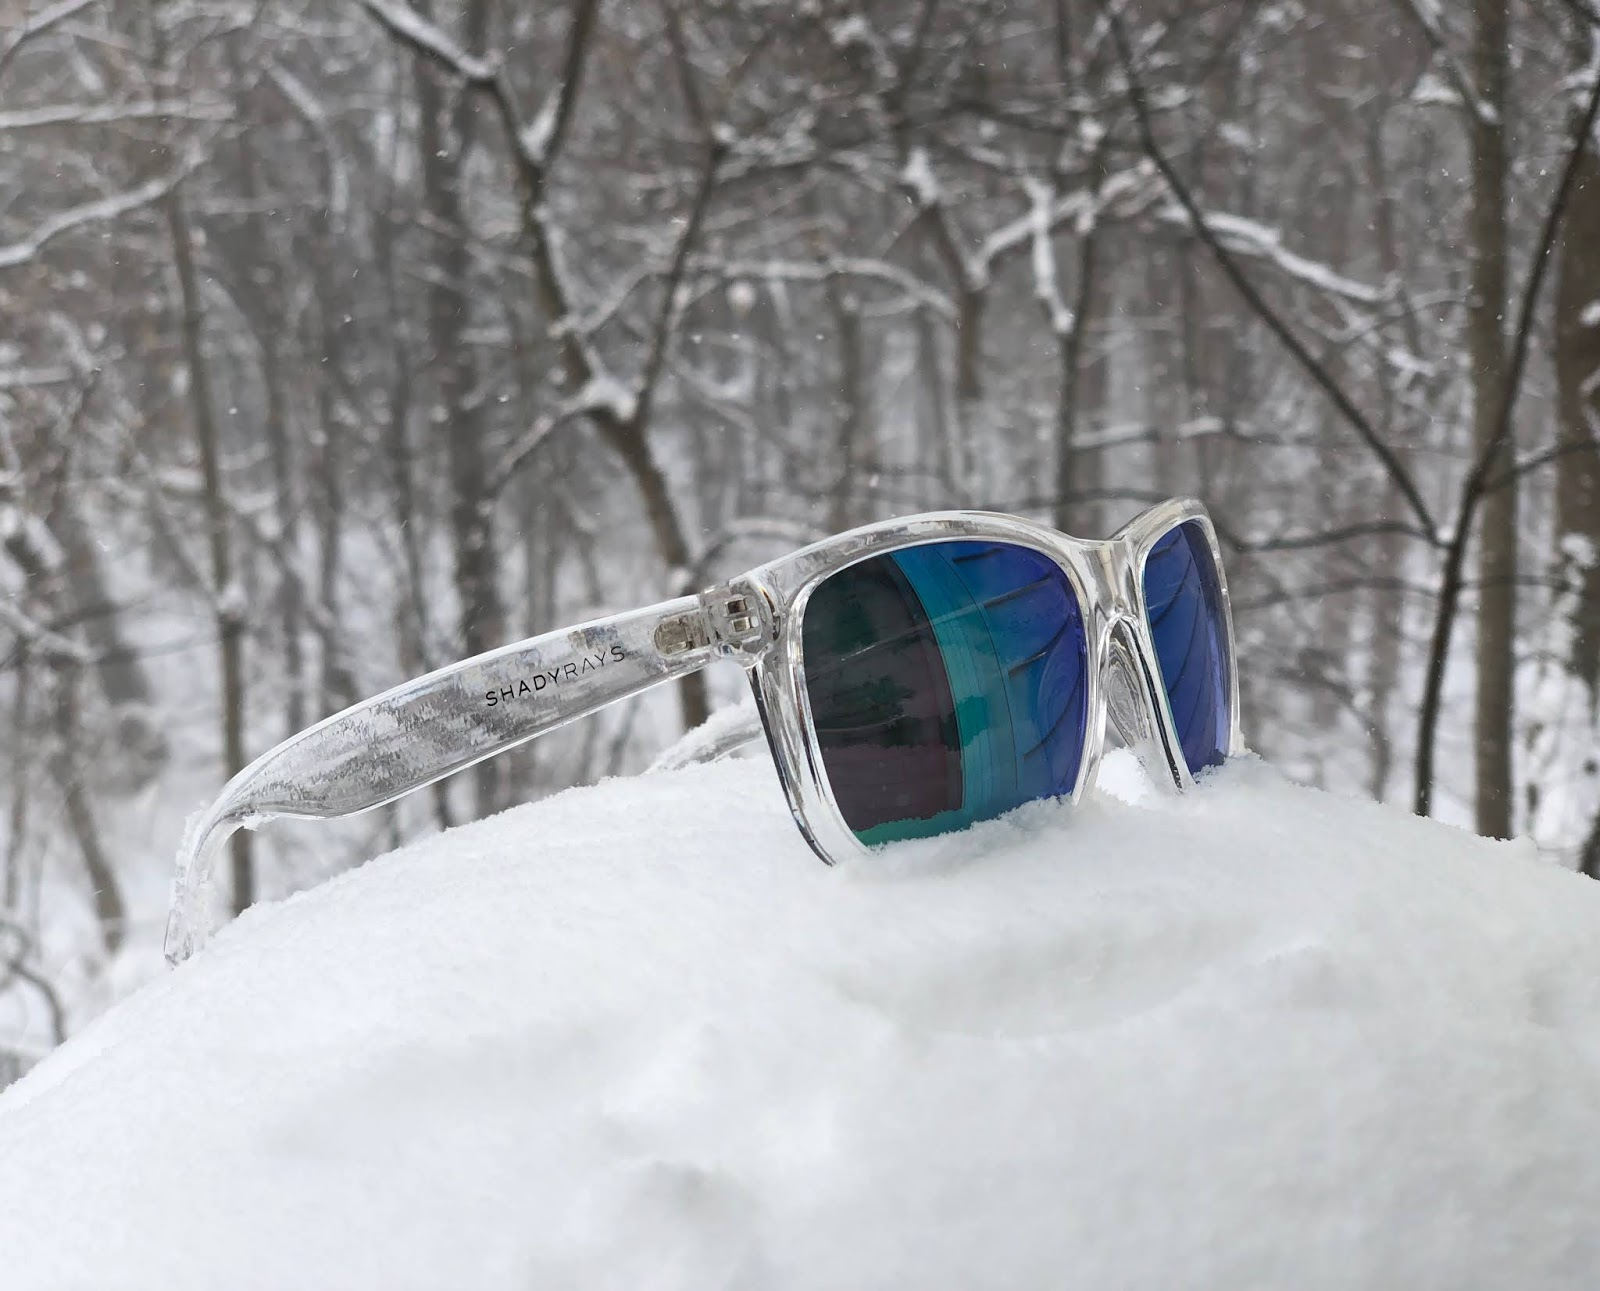 42794feabb2 So those are the Shady Rays Signature Series sunglasses - a good looking  frame shape with multiple lens choices and crisp vision.